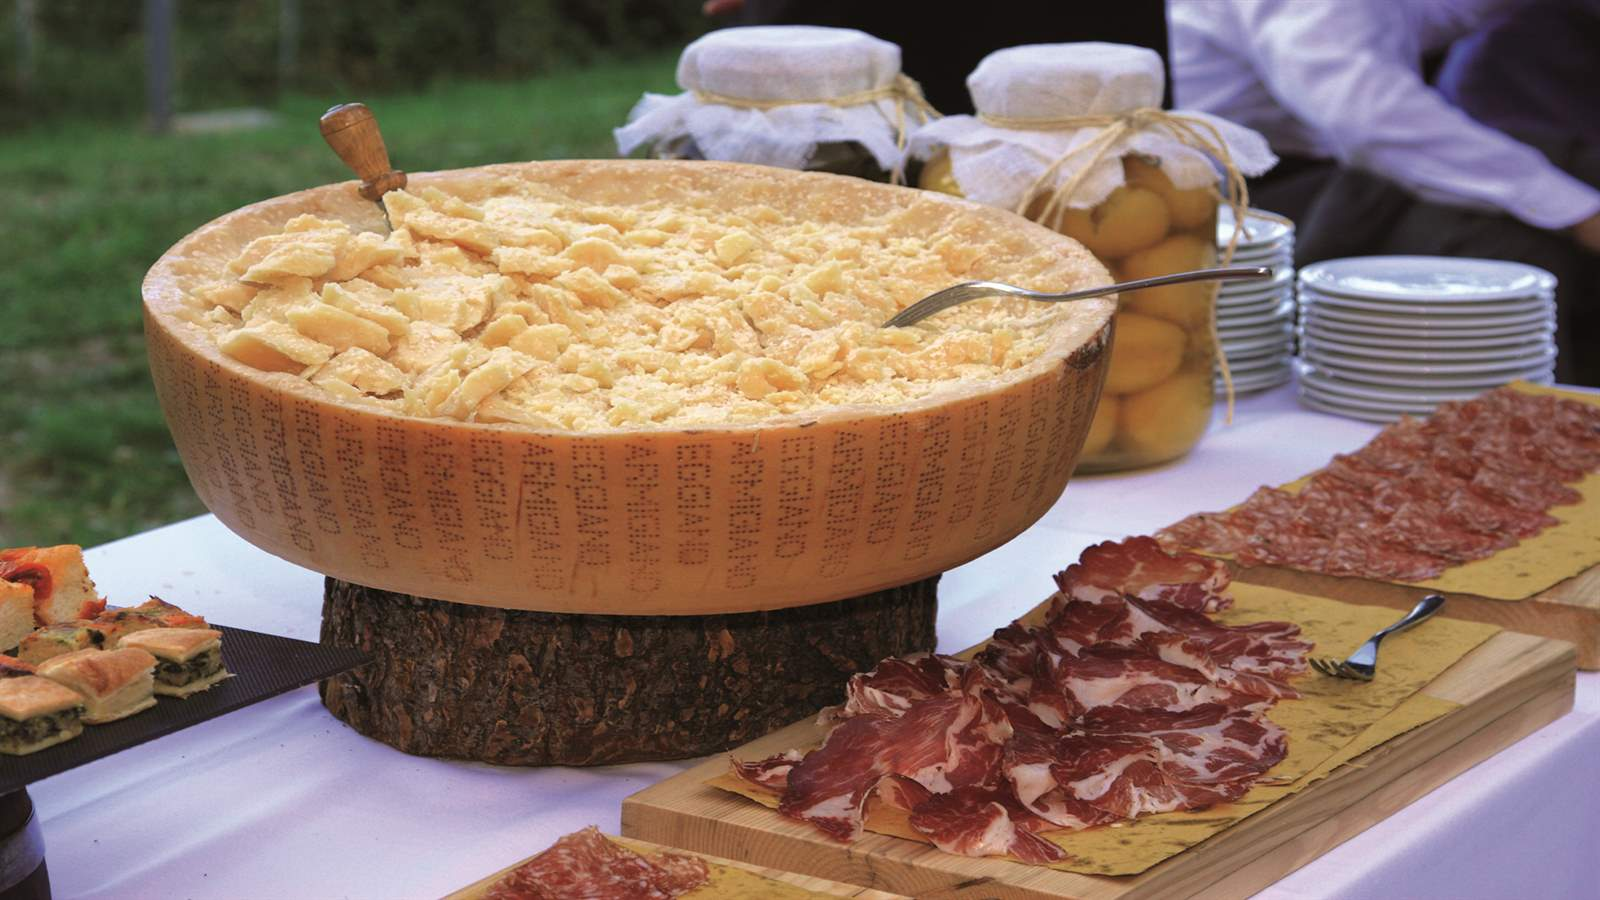 Parmigiano Reggiano open wheel and mixed cold cuts from Parma